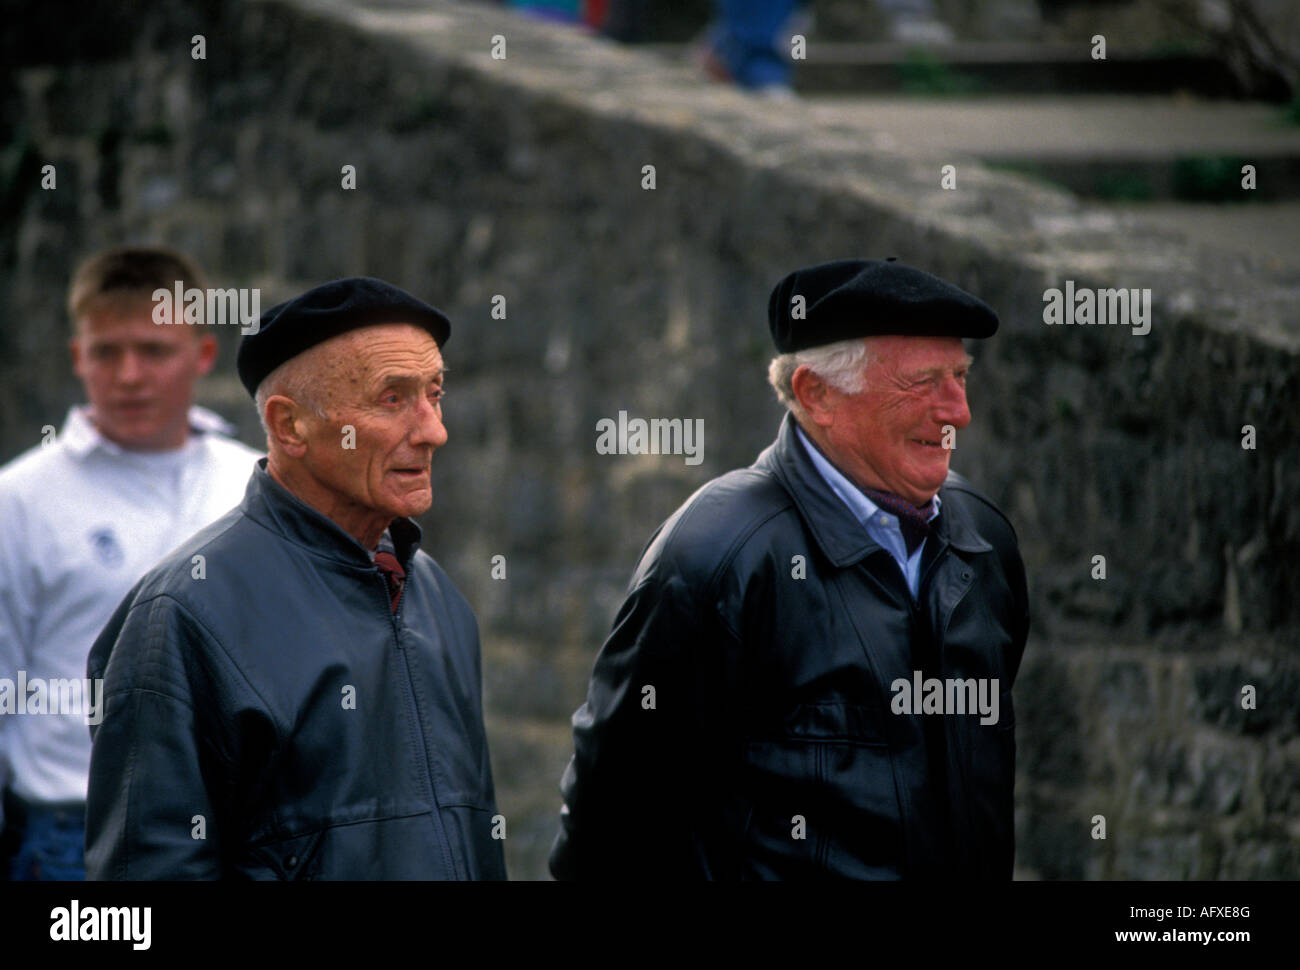 29225b7e9498e French Basque people adult men wearing black beret in the French Basque  Country capital city of